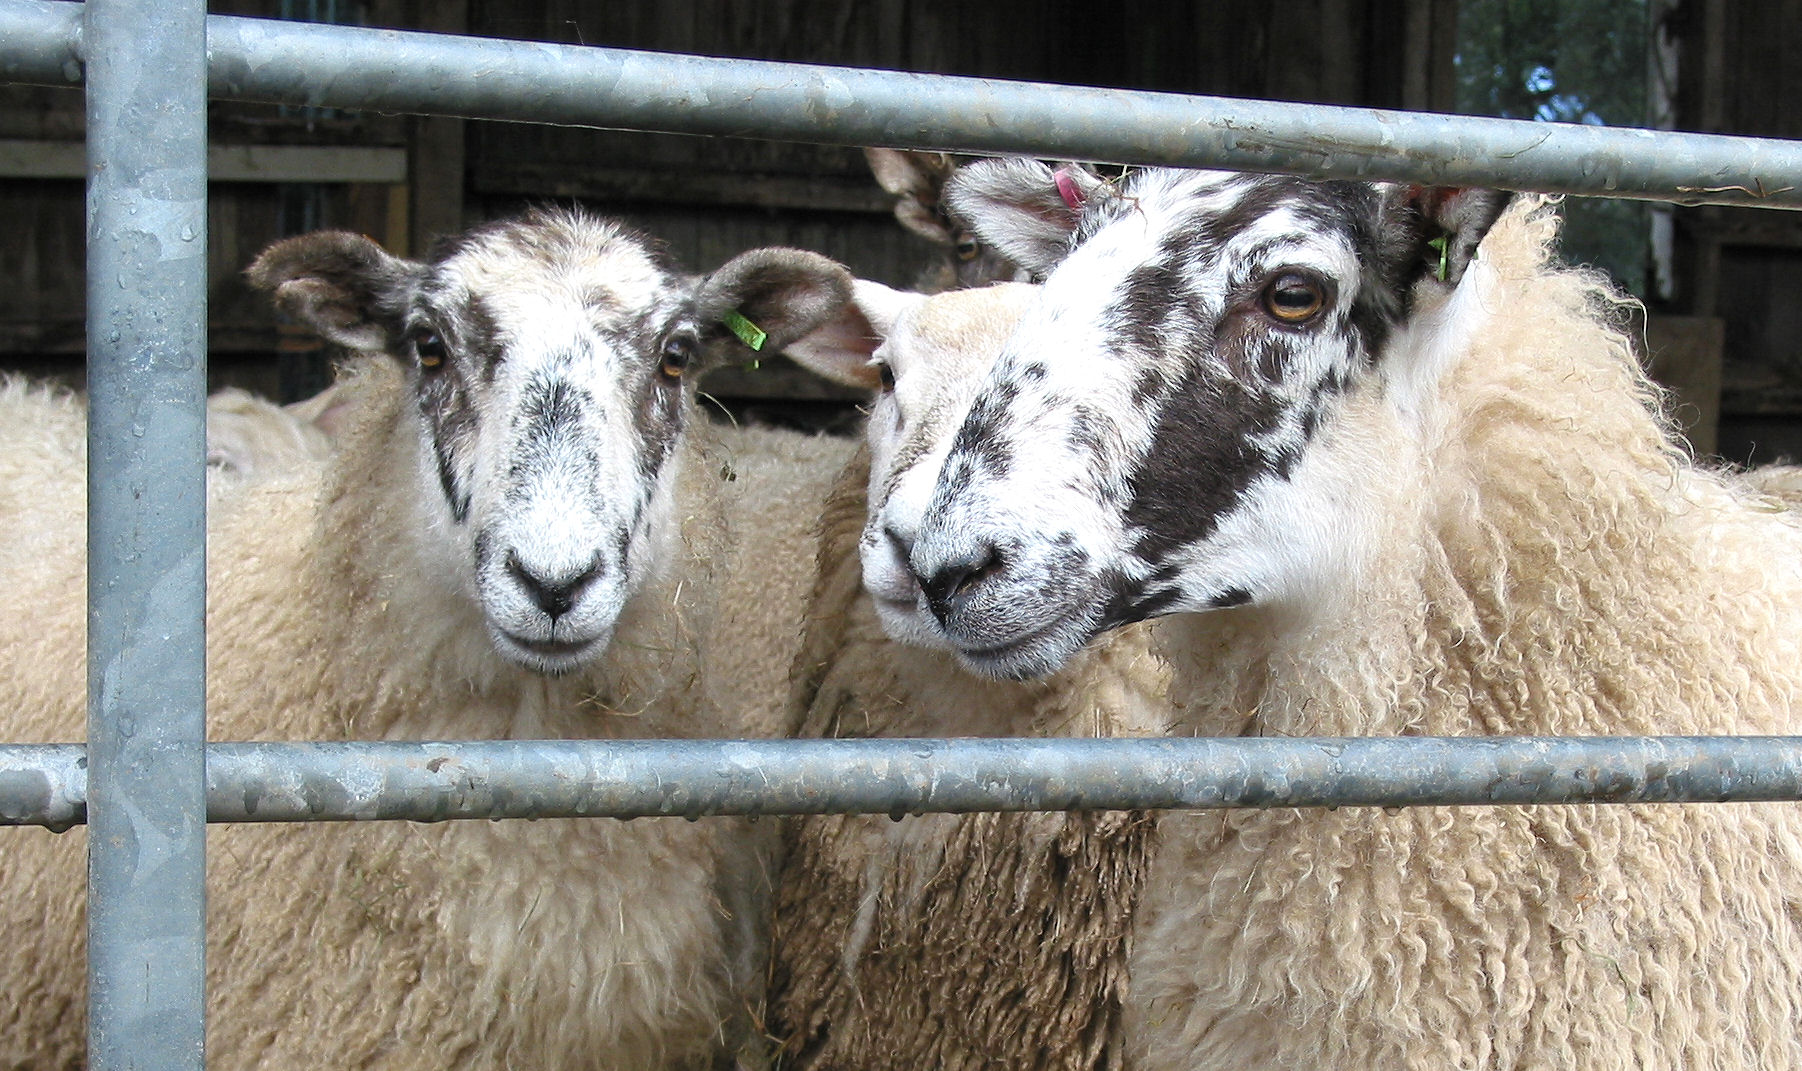 Sheep in a pen on Dartmoor, waiting their turn to be sheared. Or is it shorn ?